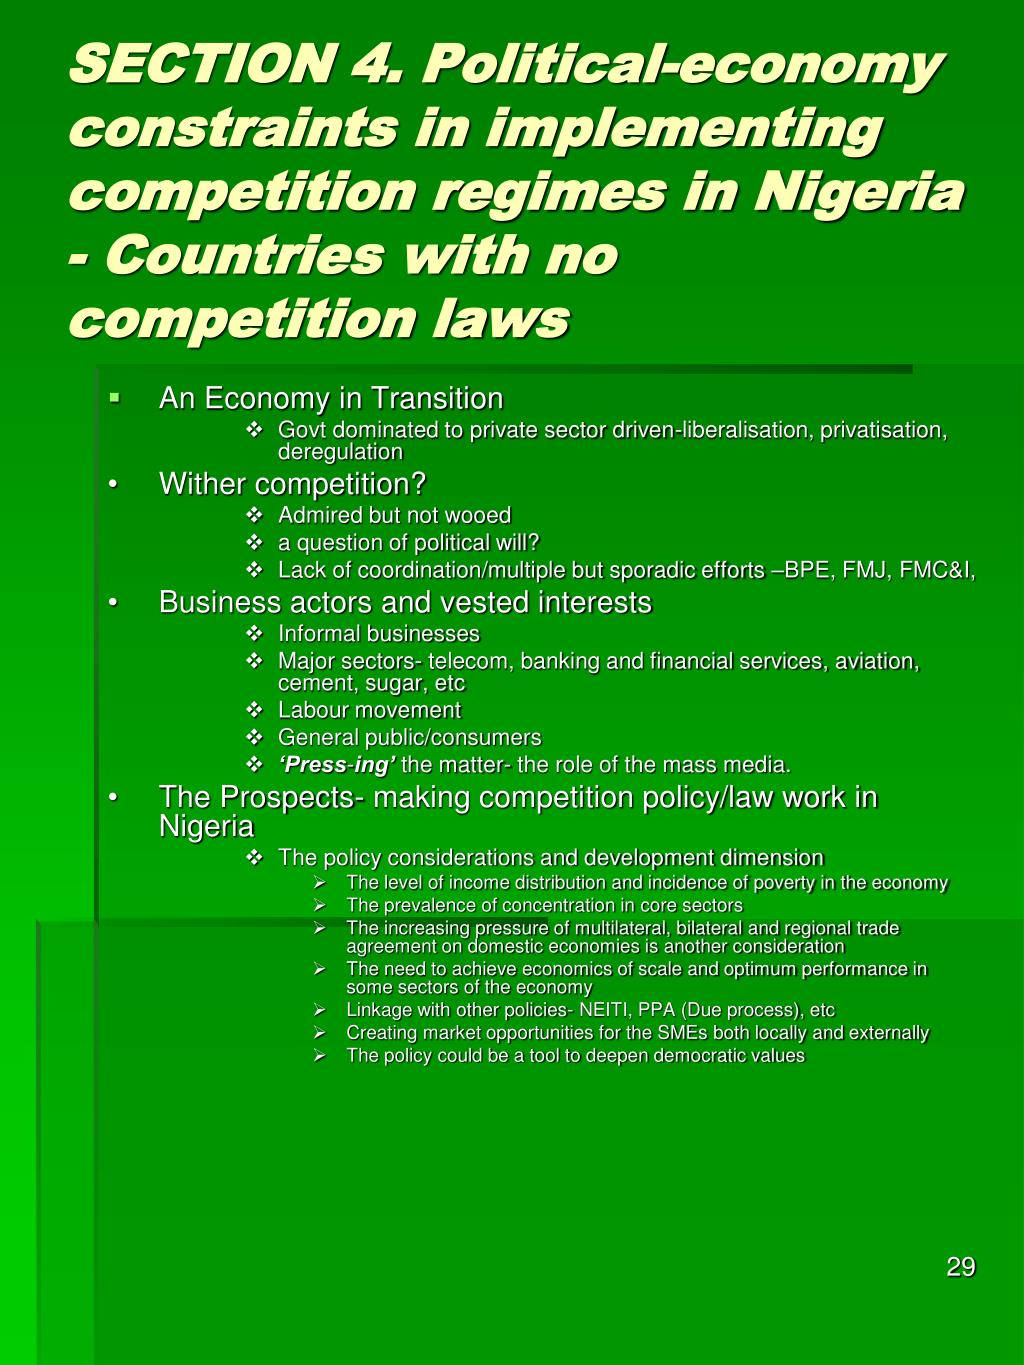 SECTION 4. Political-economy constraints in implementing competition regimes in Nigeria - Countries with no competition laws